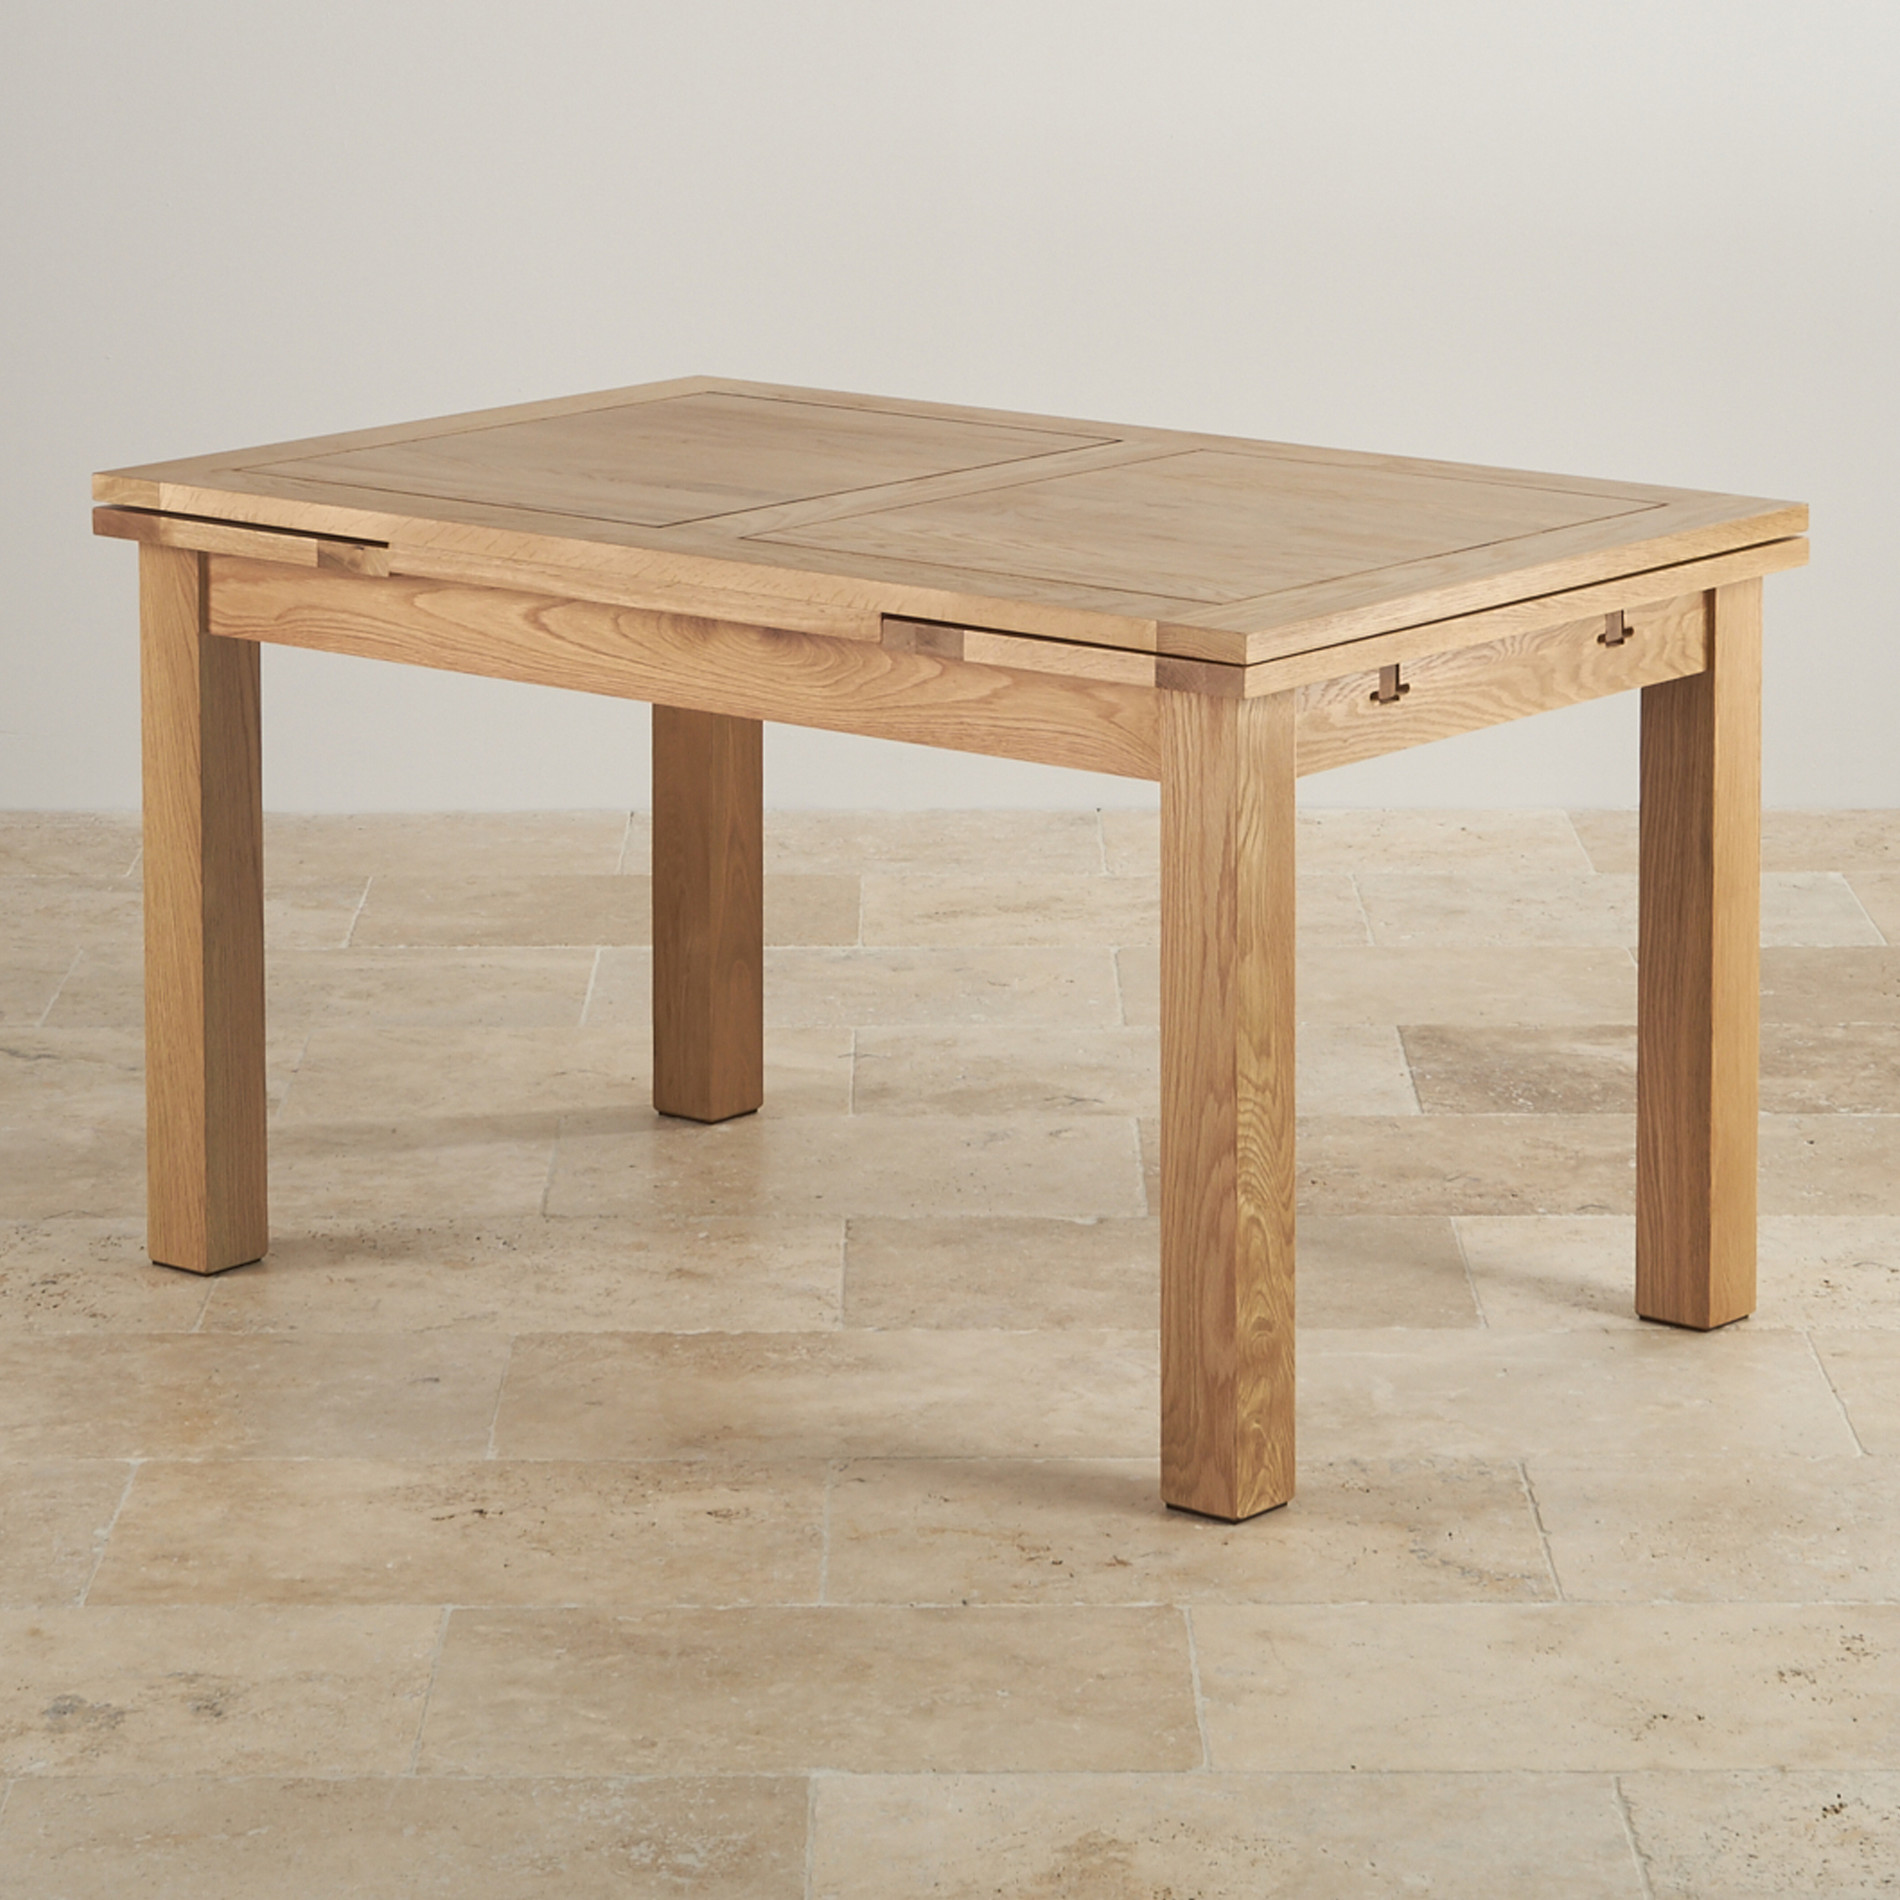 Dorset 4ft 7 natural oak extending dining table seats up to 8 for Table 6 to 9